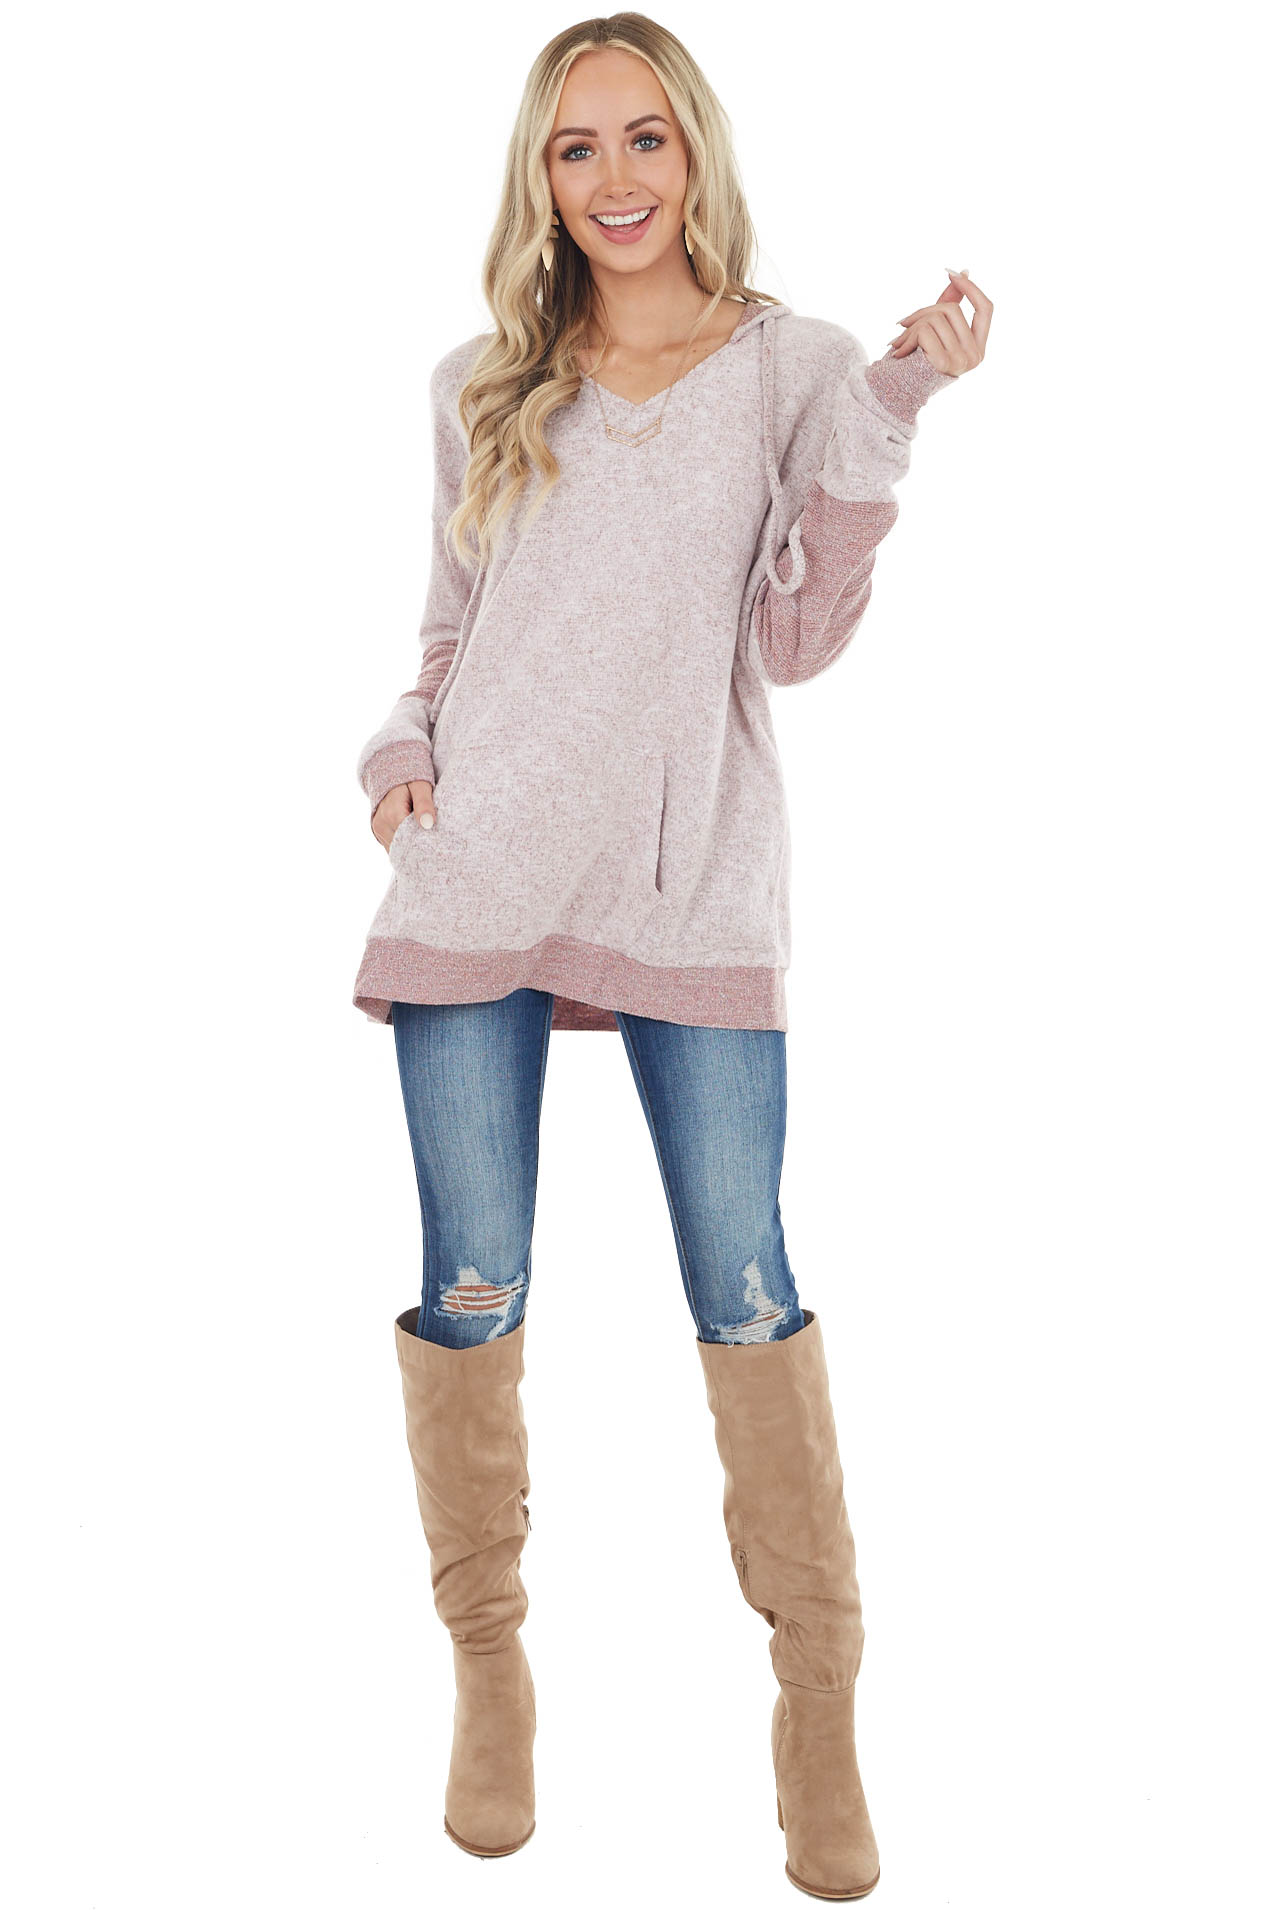 Maroon and White Two Toned Long Colorblock Sleeve Hoodie